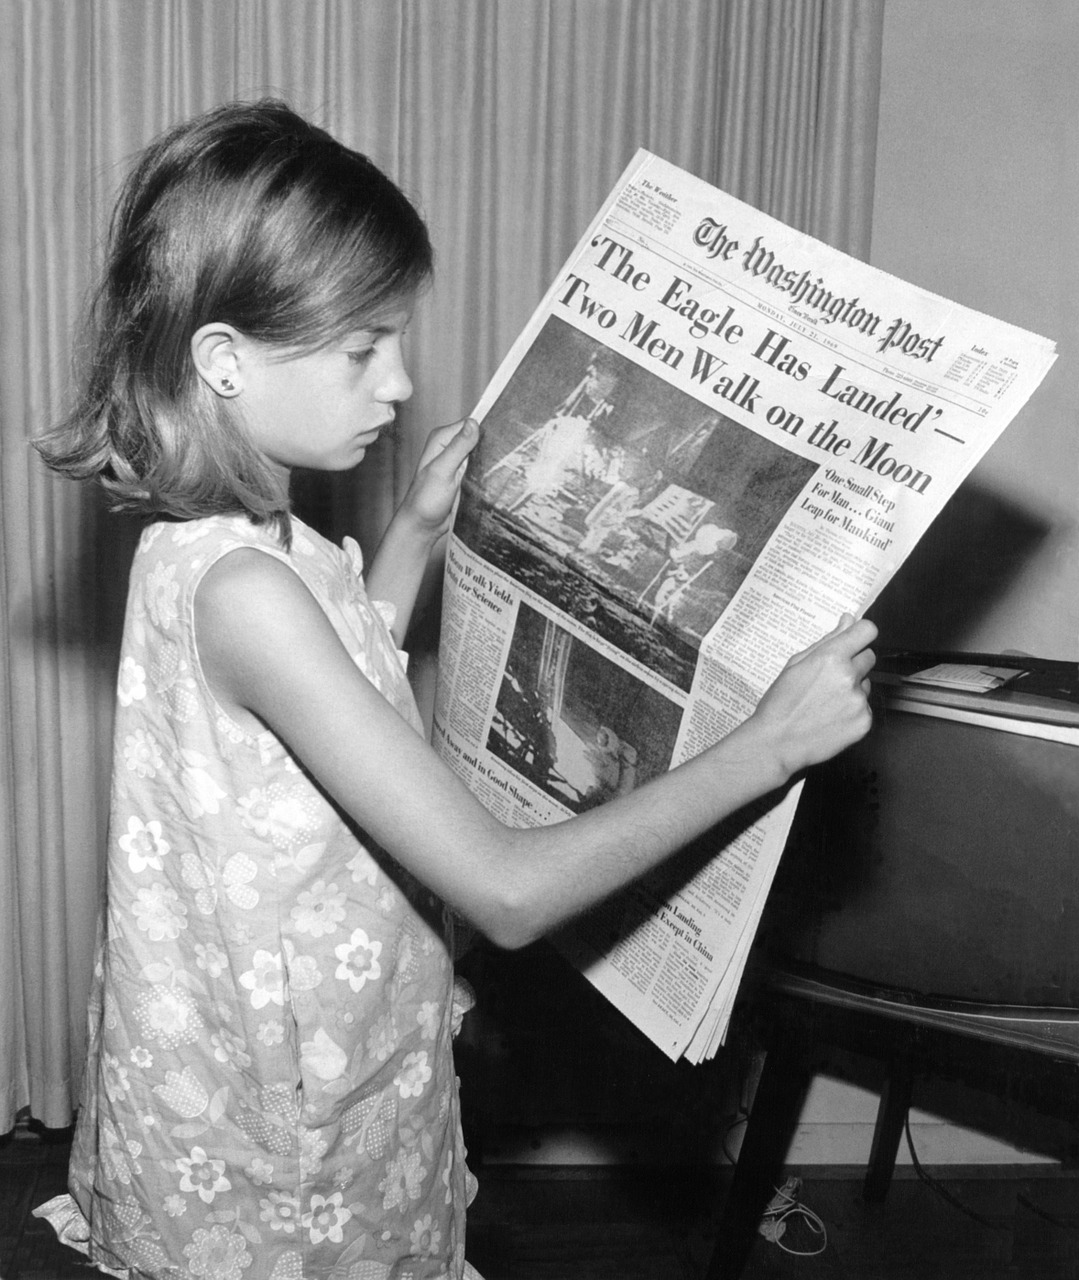 newspaper,news,read,moon landing,child,21 july 1969,usa,washington post,black and white,free pictures, free photos, free images, royalty free, free illustrations, public domain